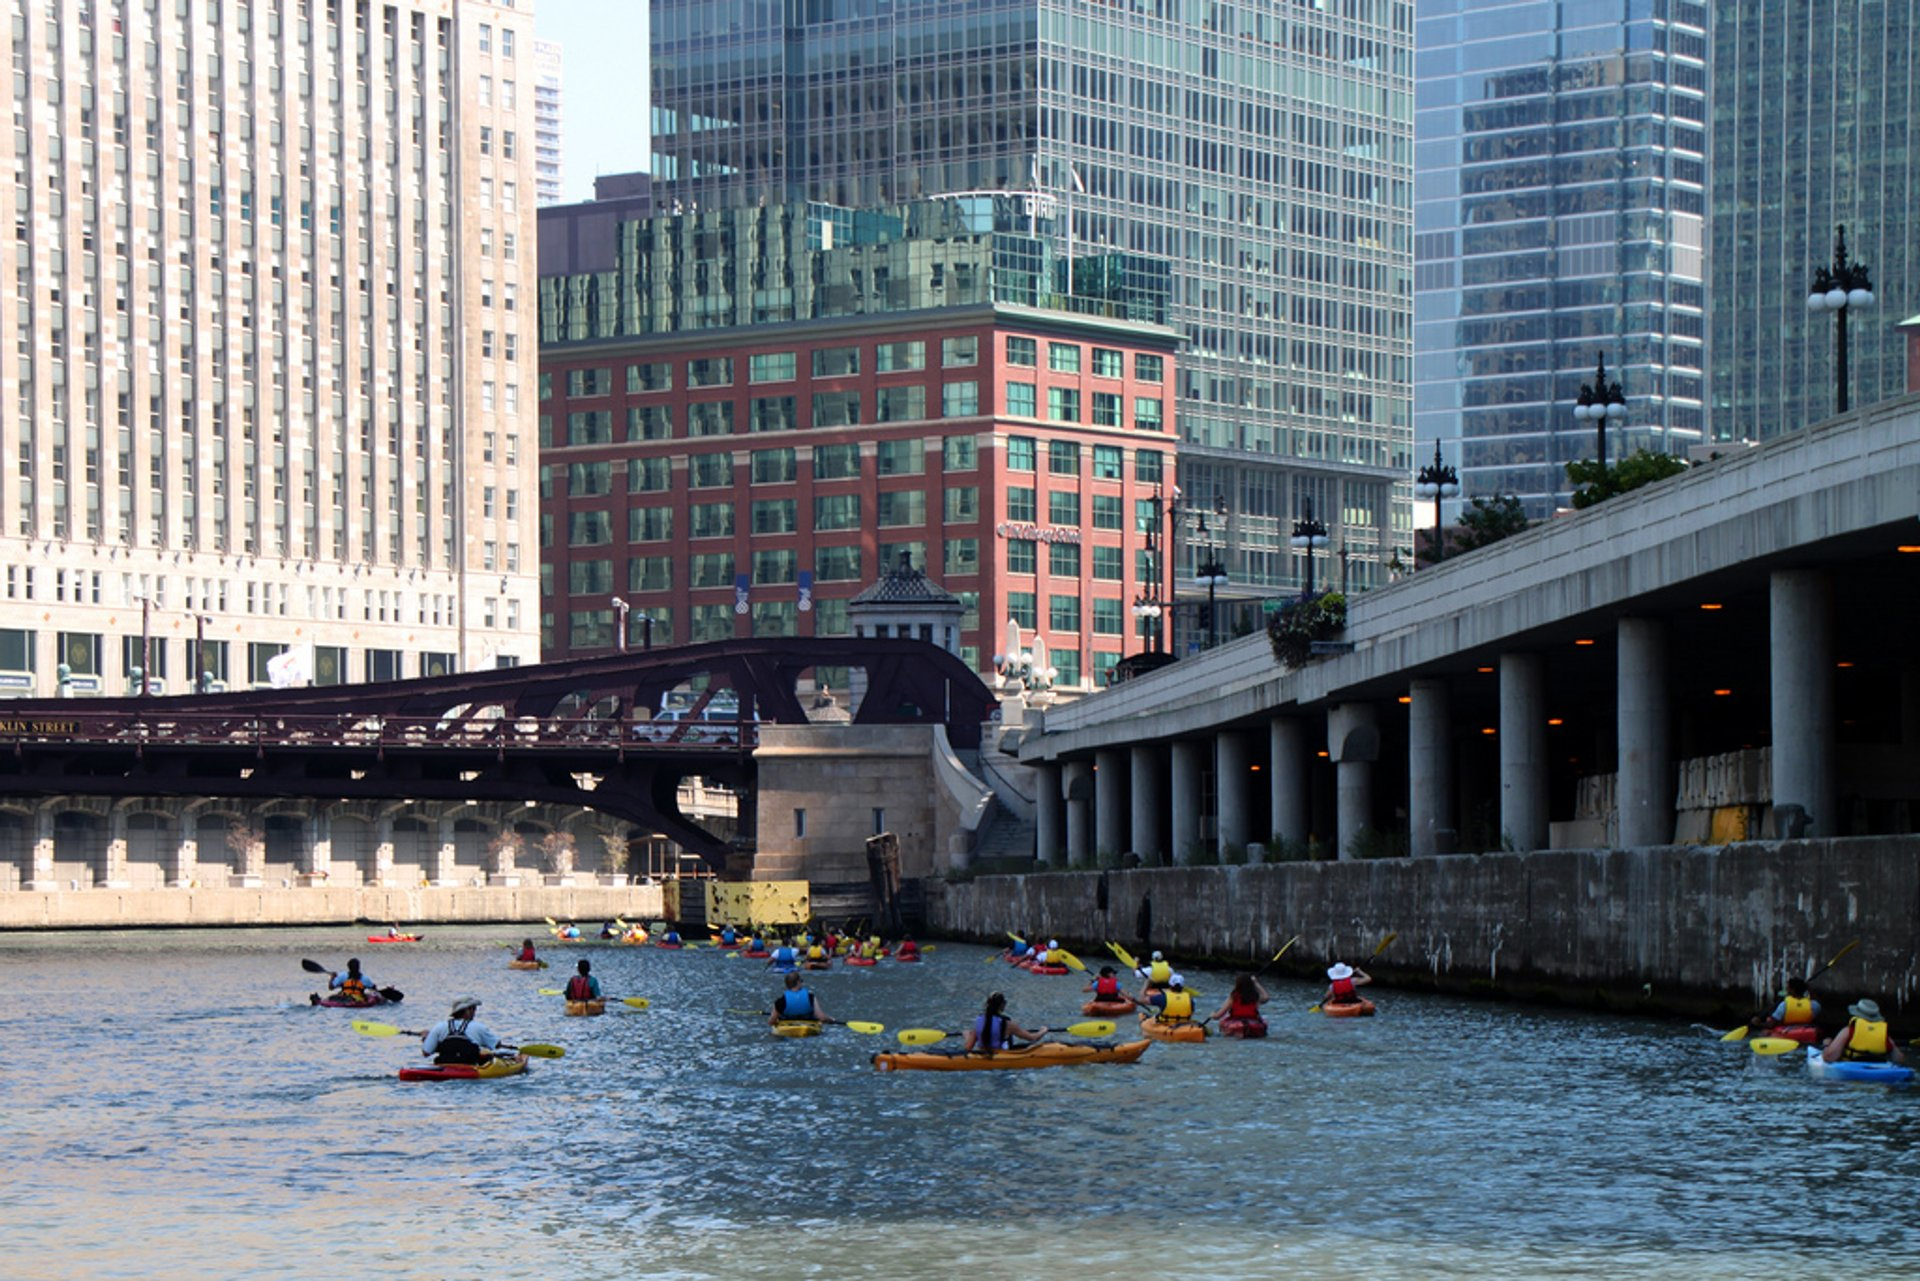 Kayaking Season in Chicago 2020 - Best Time